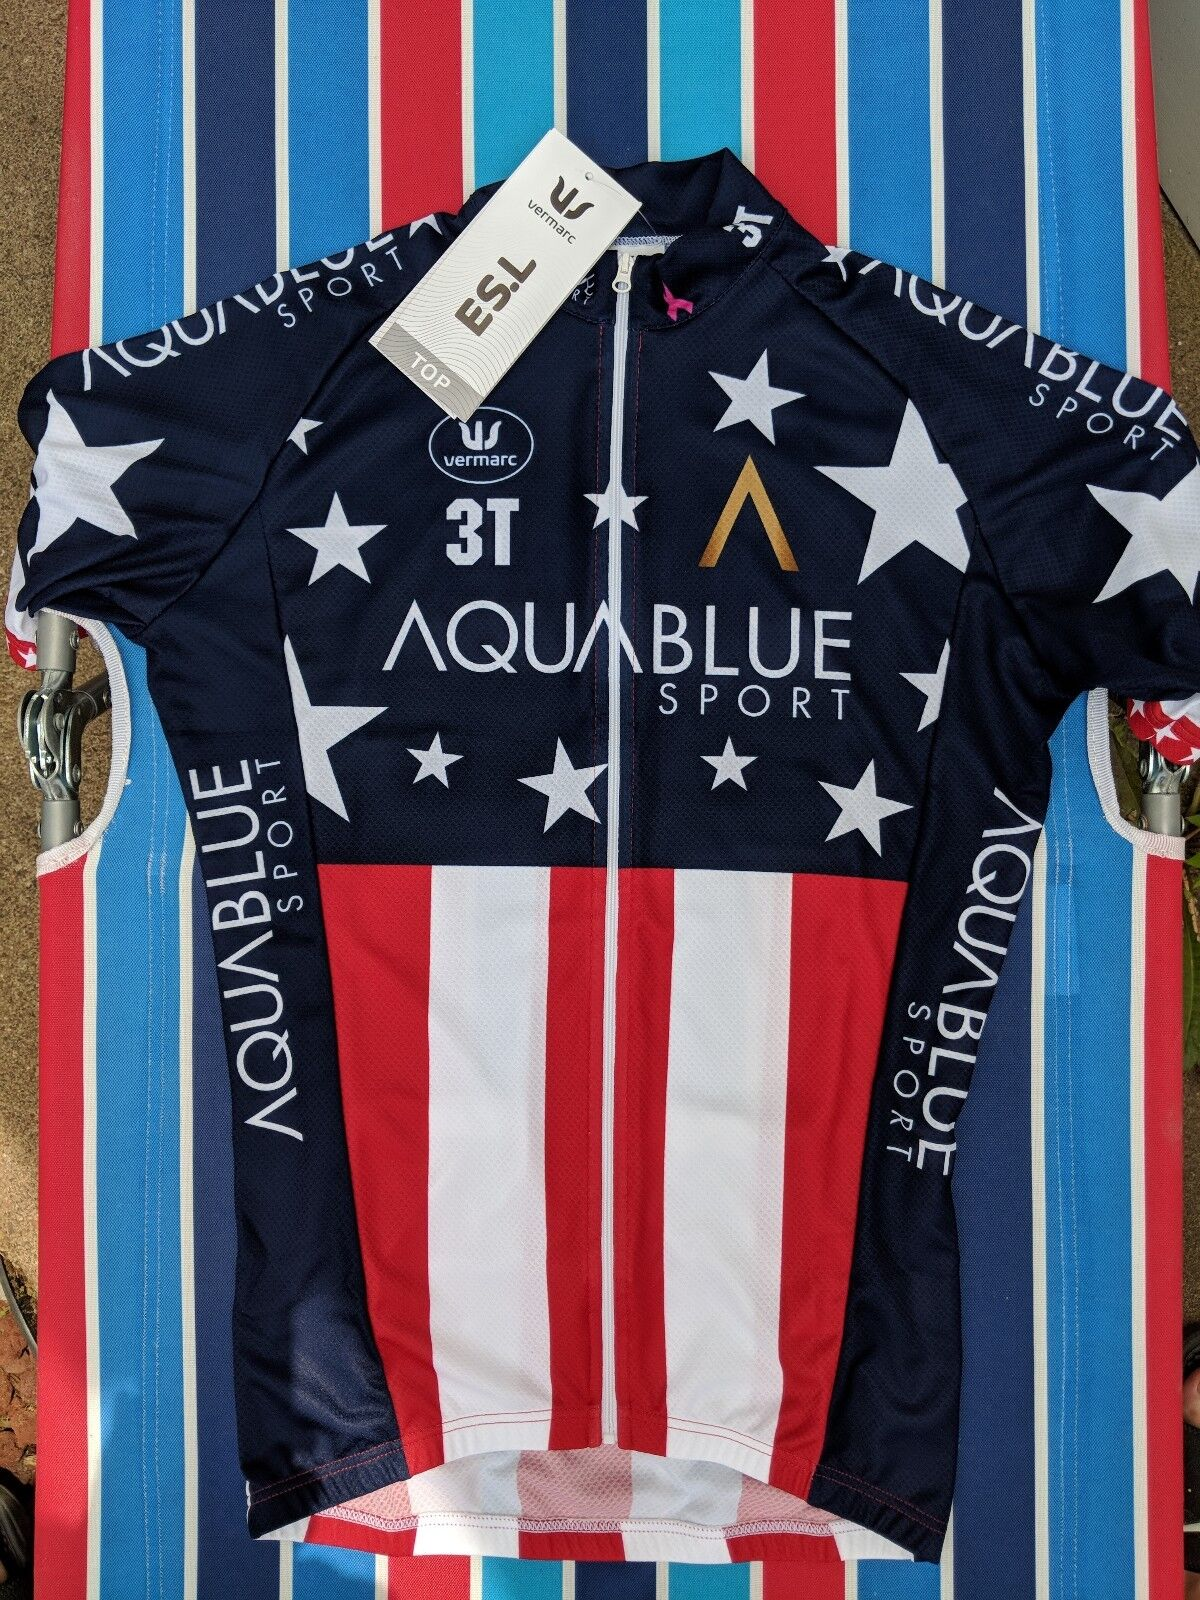 U.S. National Champion's Jersey, Vermarc, Aquabluee,  Larry Warbasse Edition  cheap online